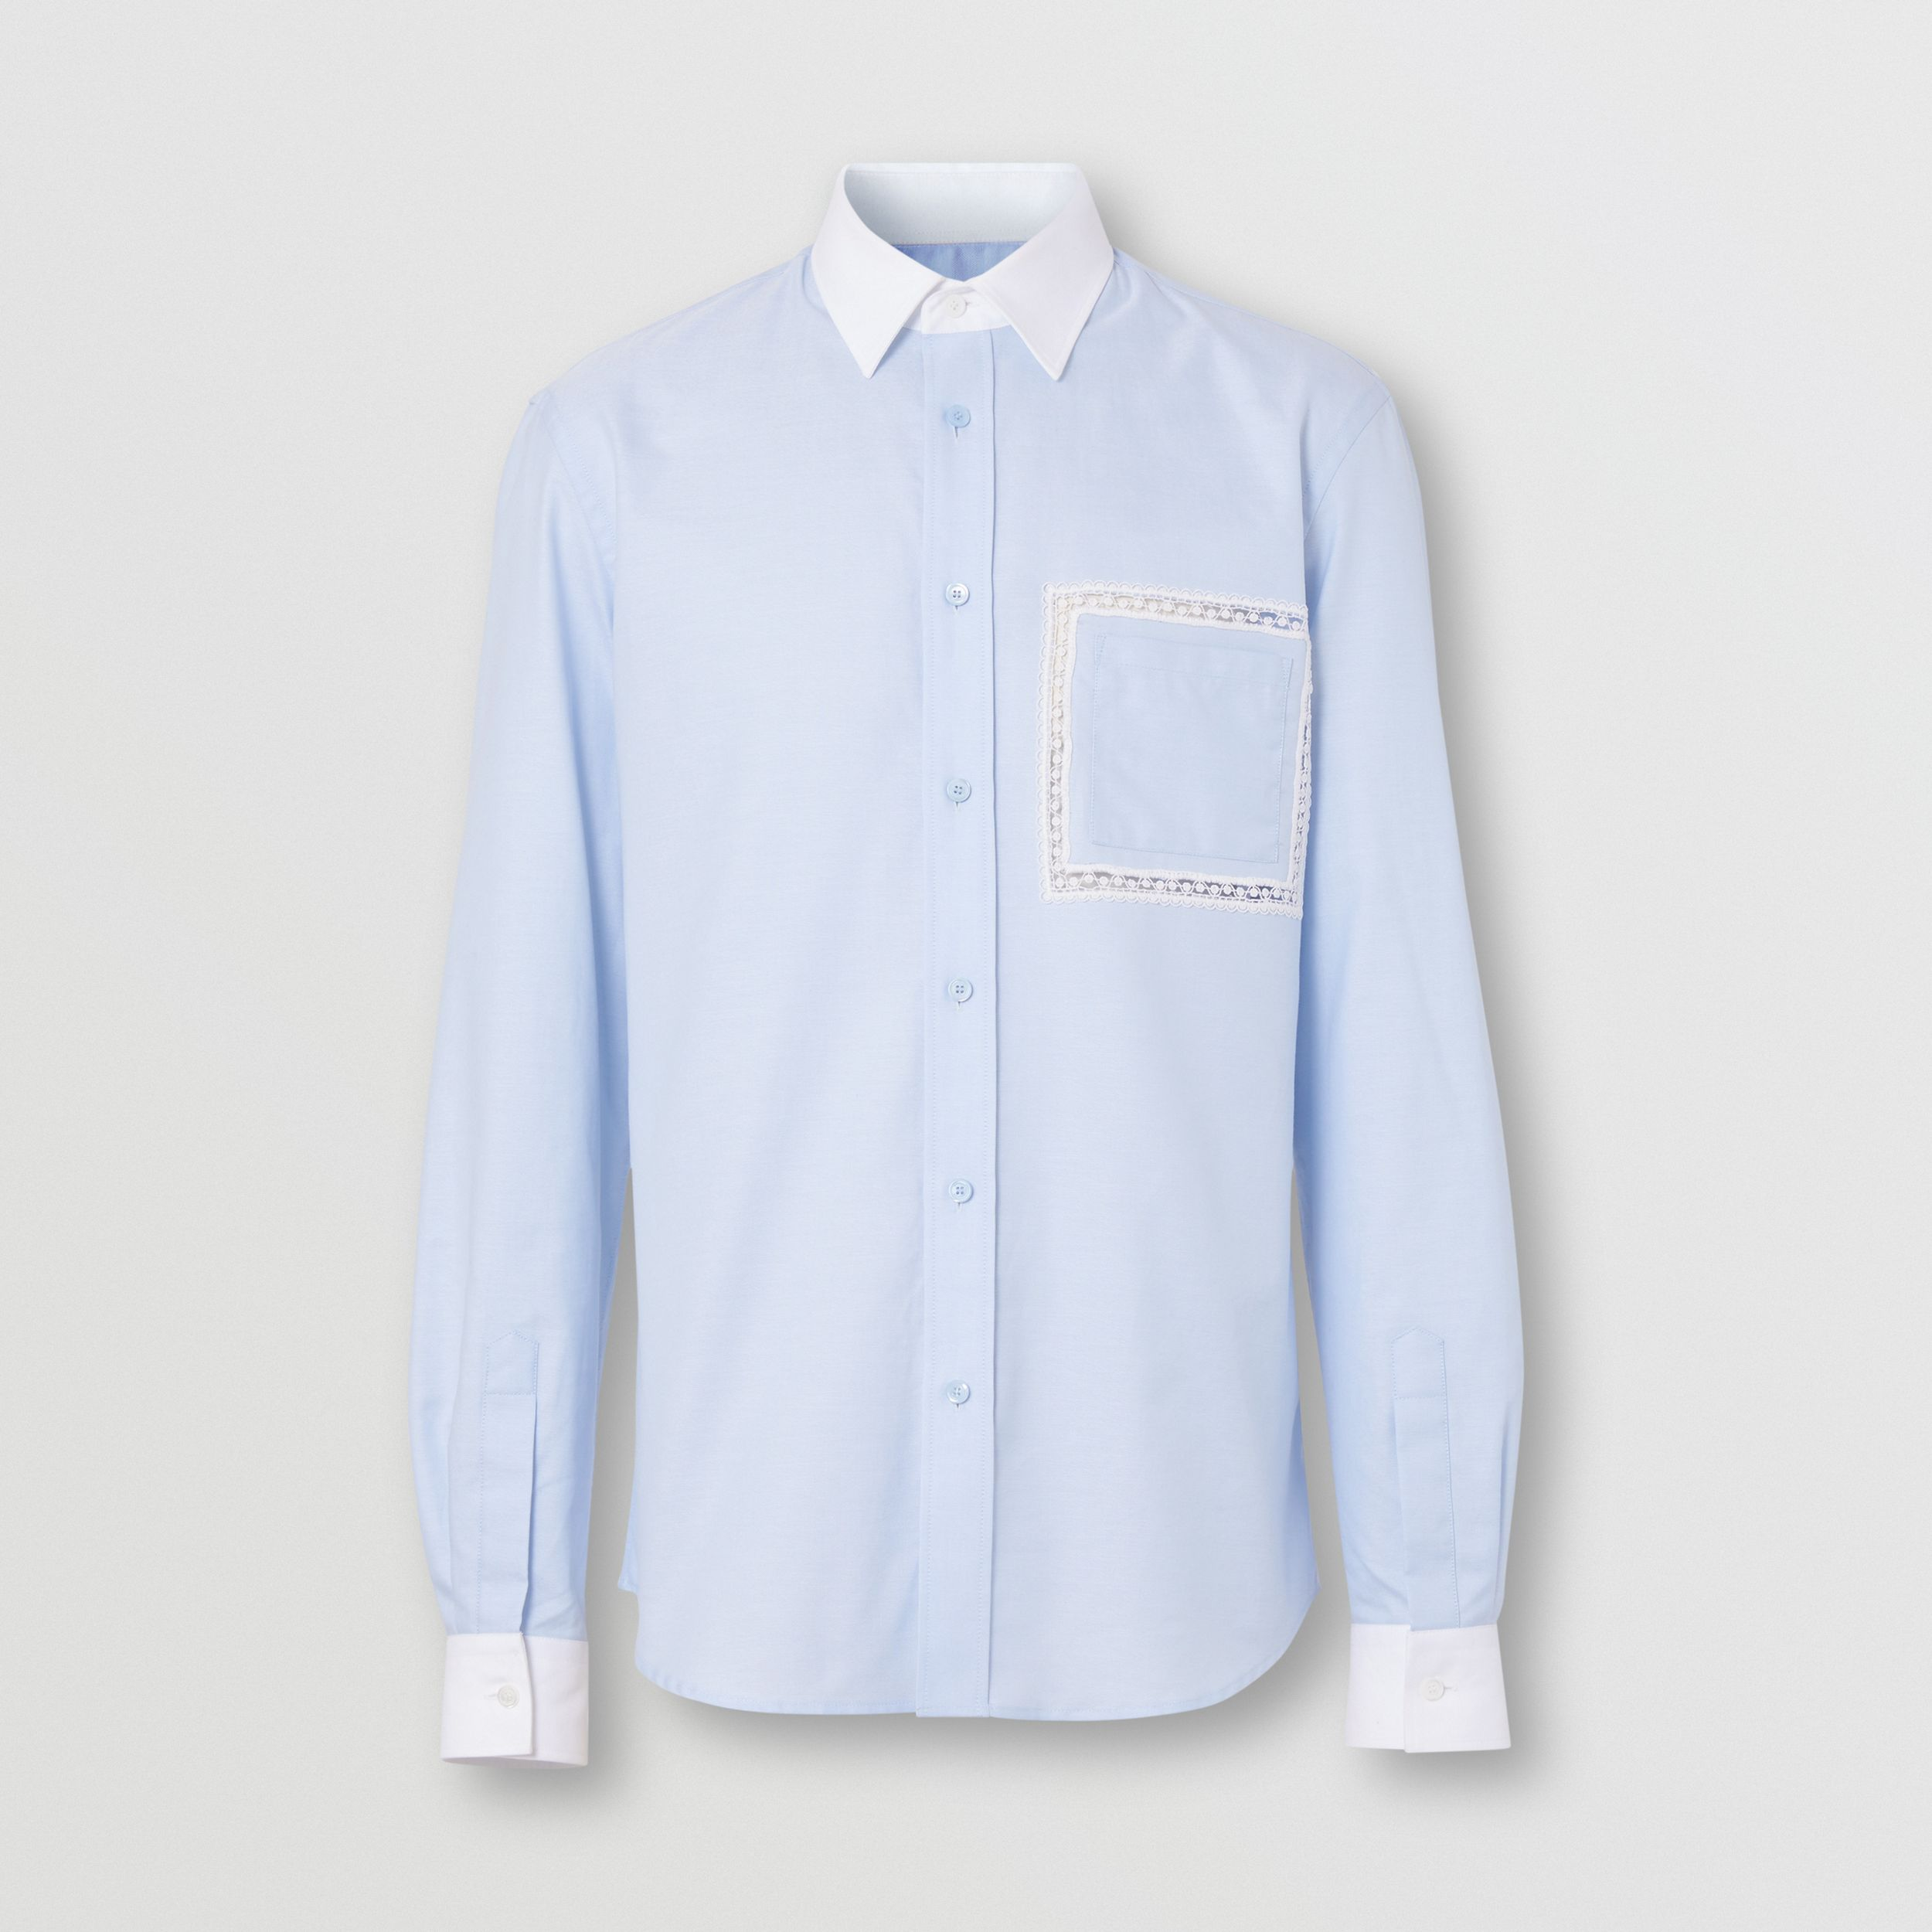 Classic Fit Lace Detail Cotton Oxford Shirt in Pale Blue - Men | Burberry - 4